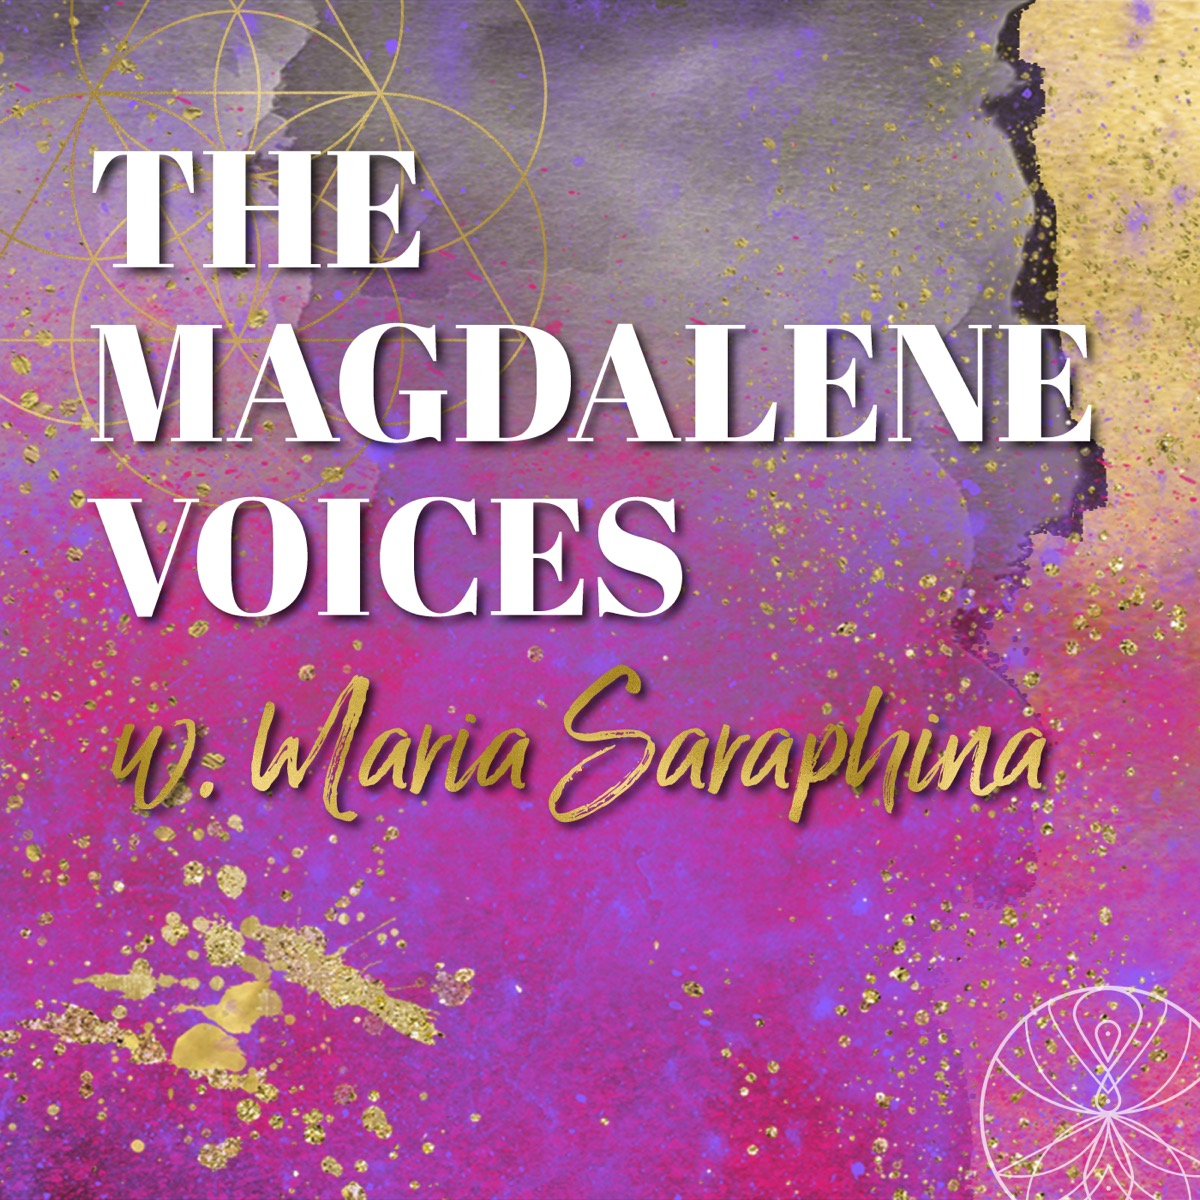 magdalene voices podcast